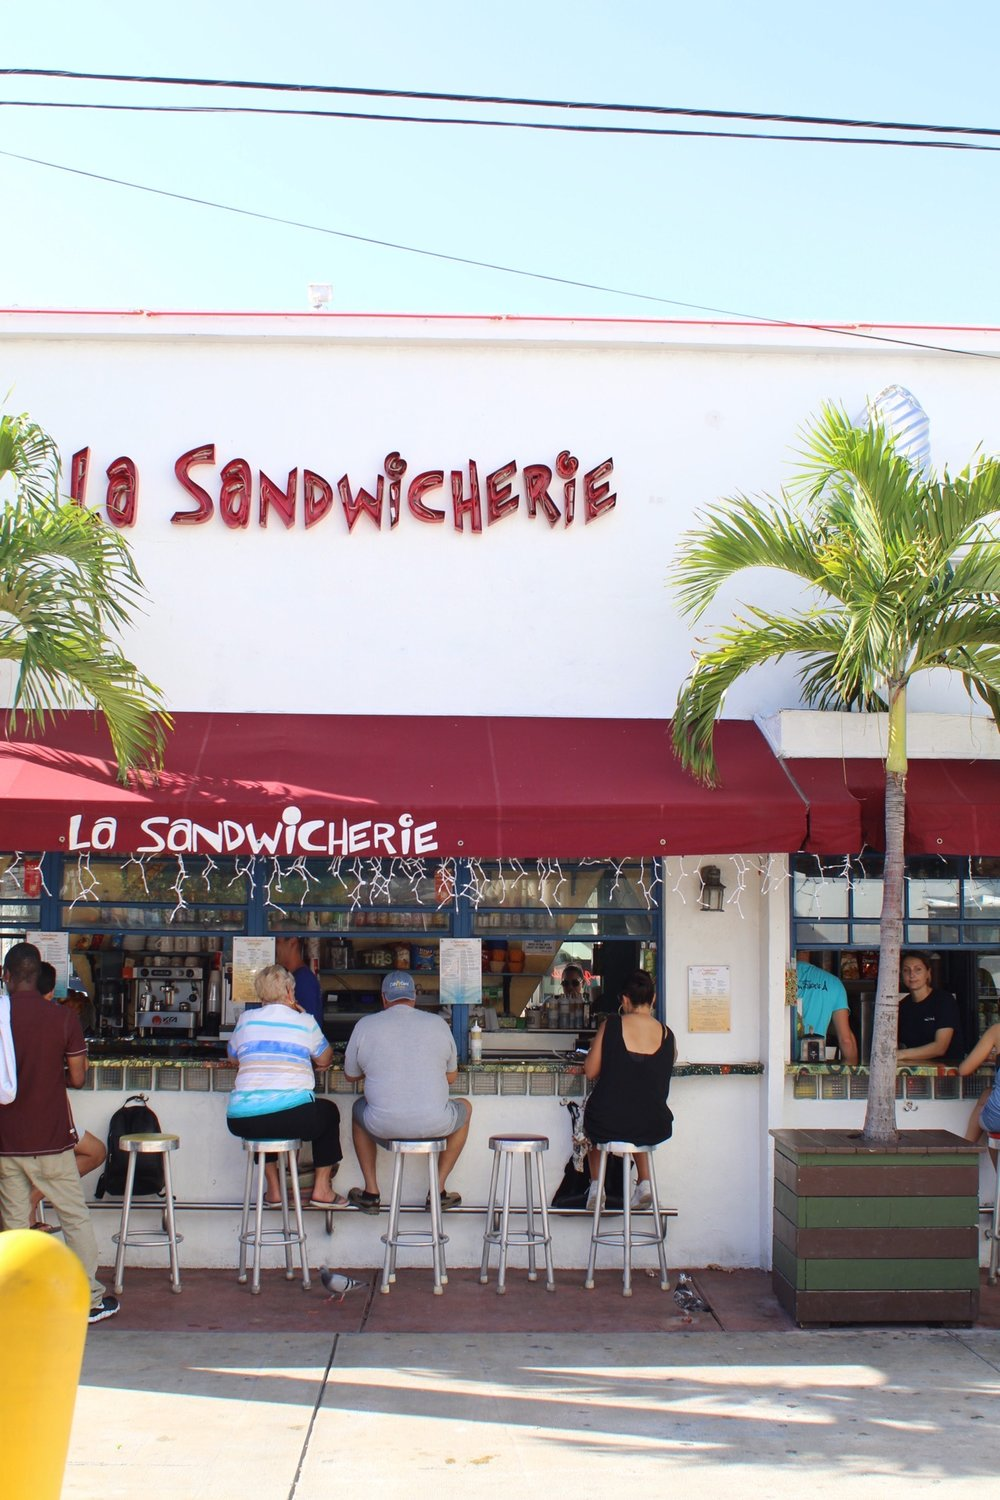 Tropical vibes and questionable font choice at La Sandwicherie